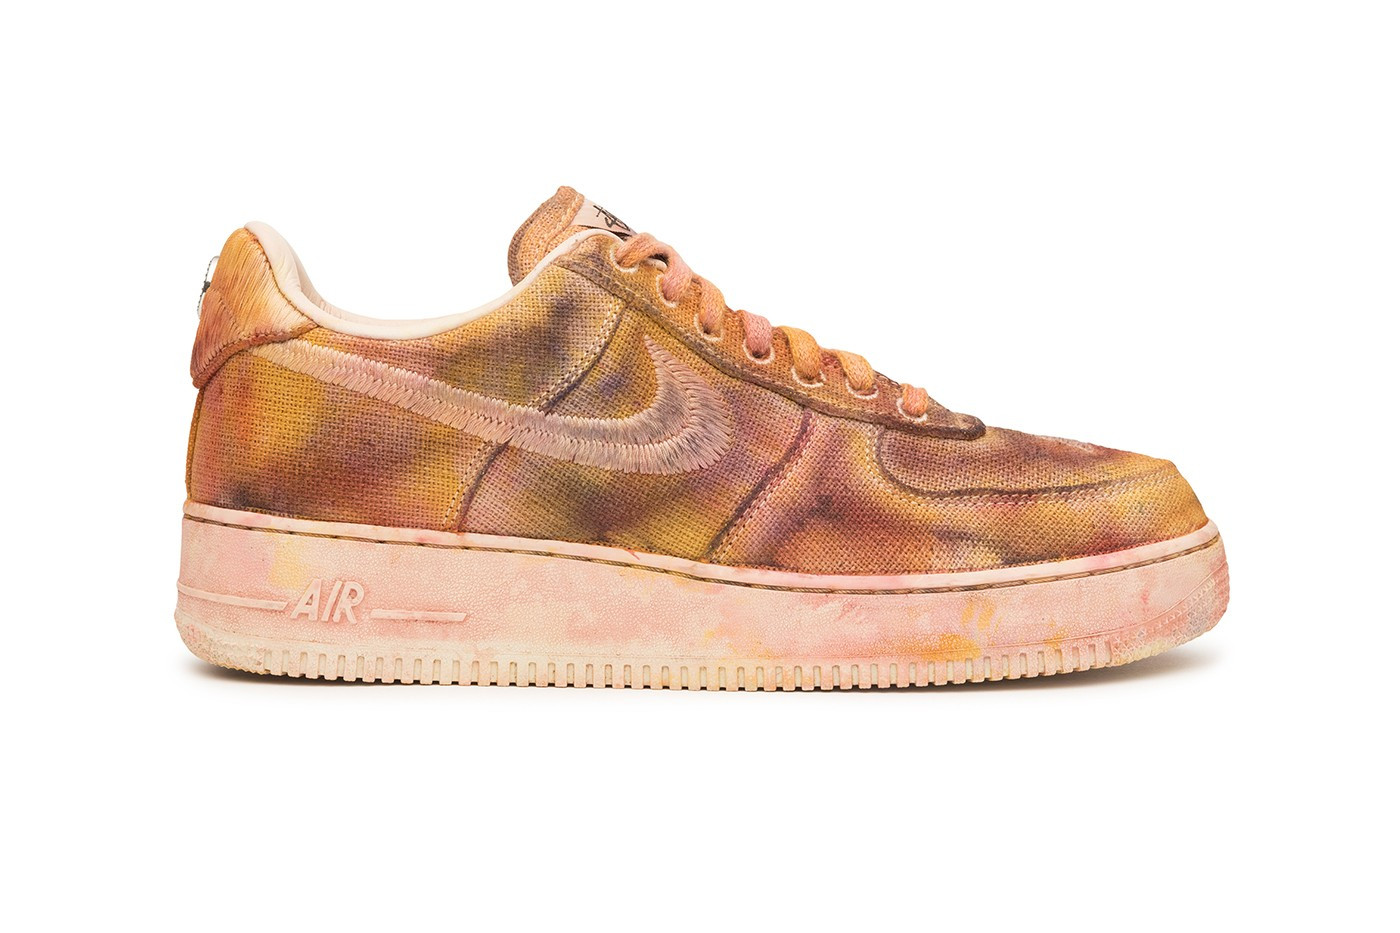 stussy nike air force 1 hand dyed